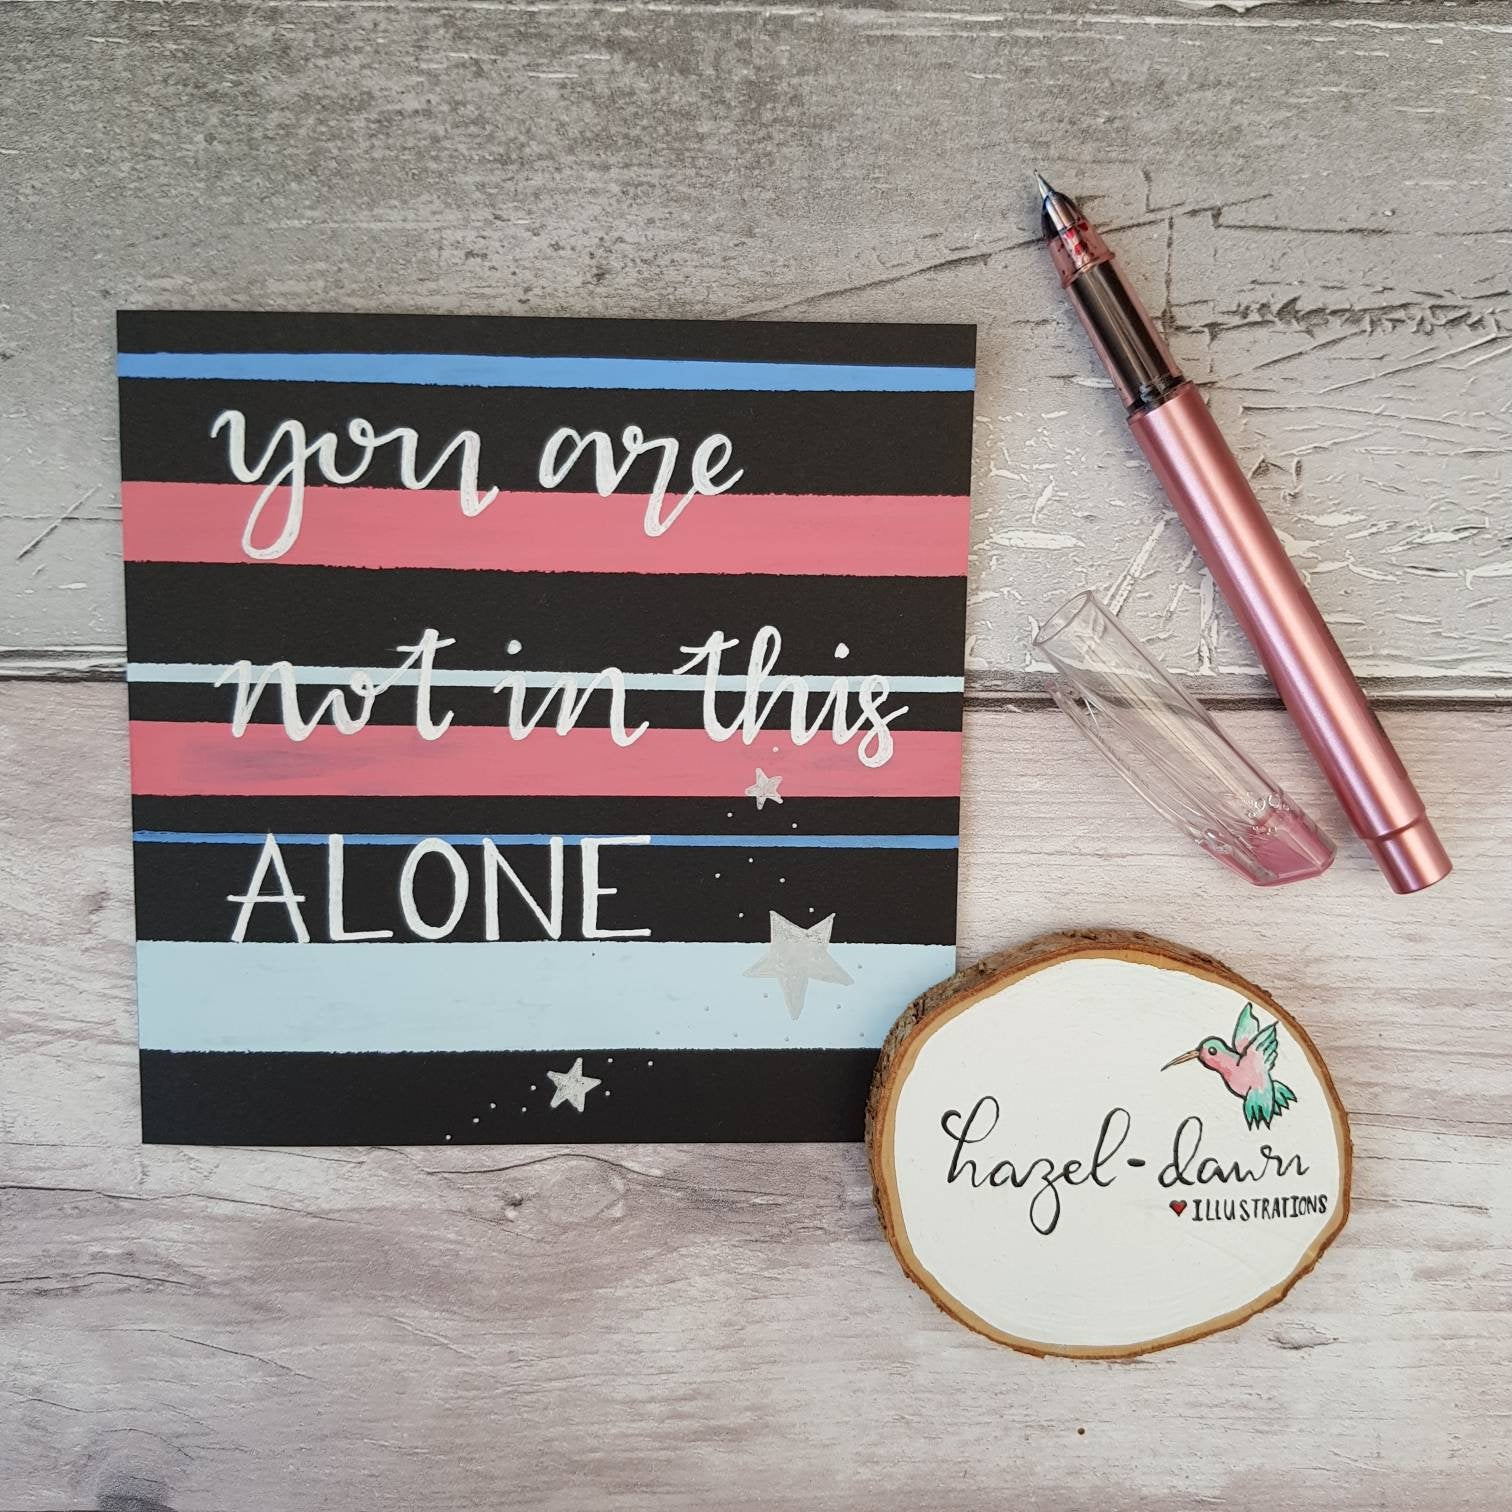 'You Are Not Alone' Card for Friendship, Motivation, Support – Hand Drawn Kind Shop 2